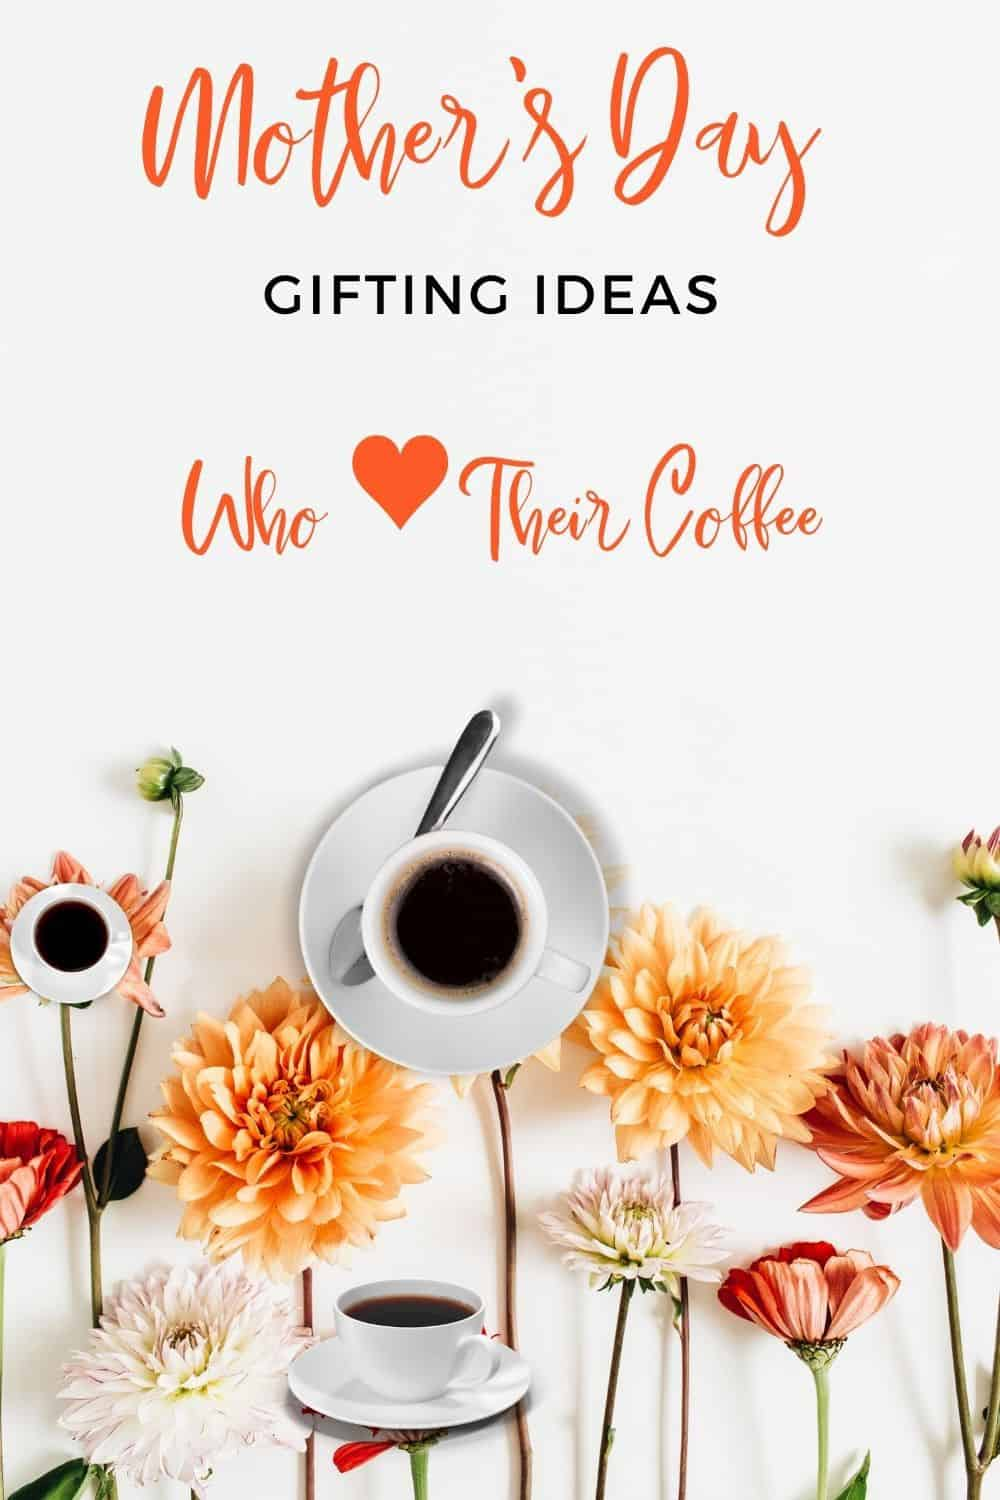 GIfts for moms who love coffee flowers with coffee cups